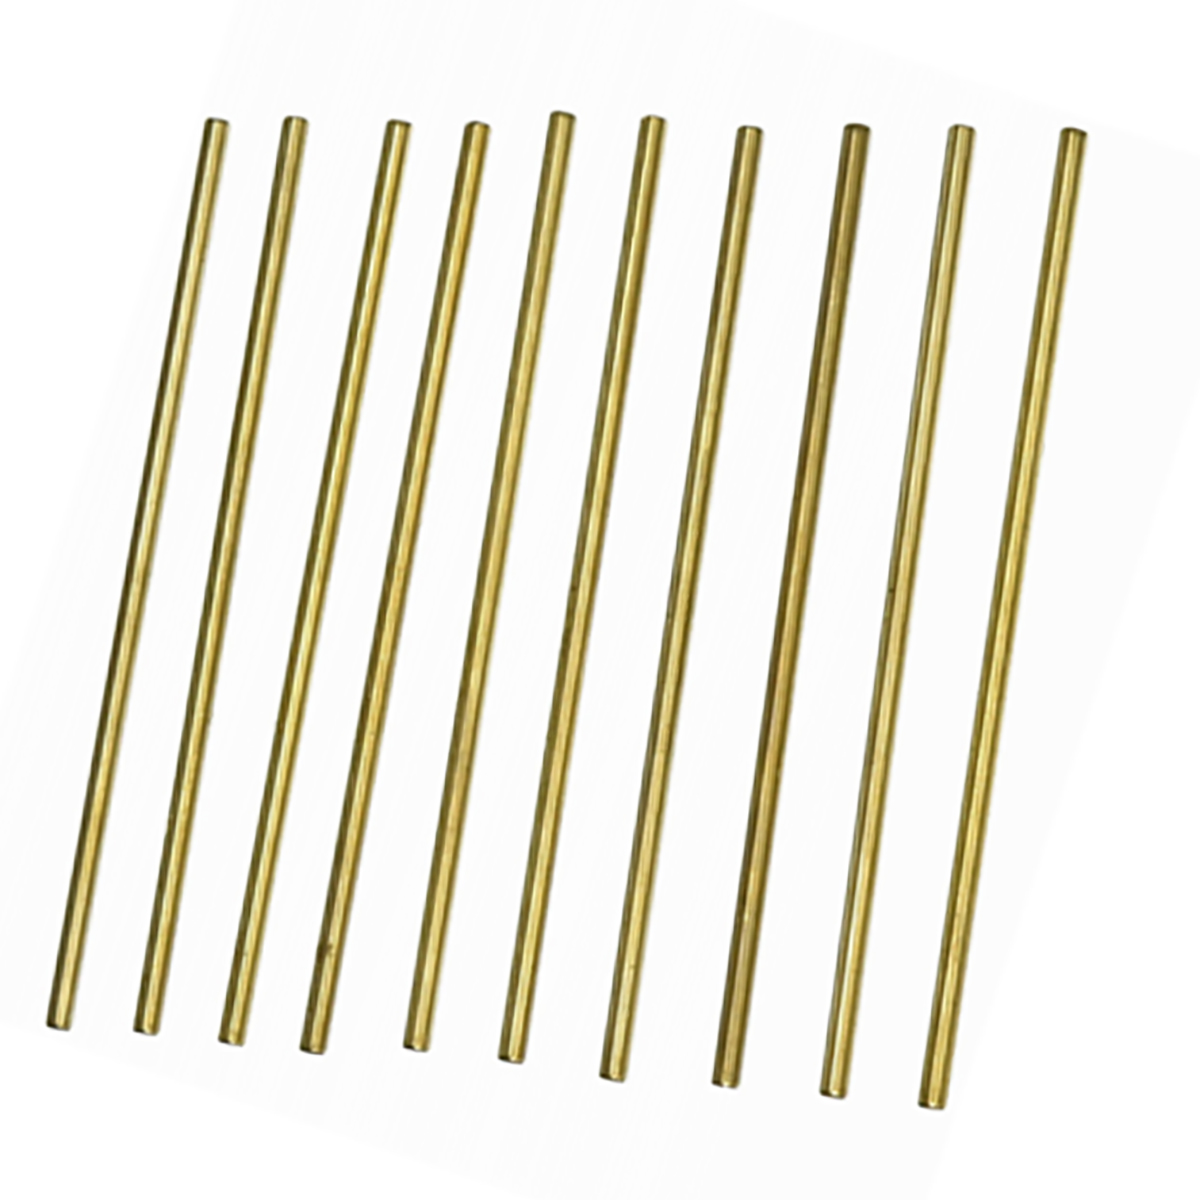 10pcs 100mm Length Brass Round Rod Bar 3mm Diameter Durable For RC Model Airplane